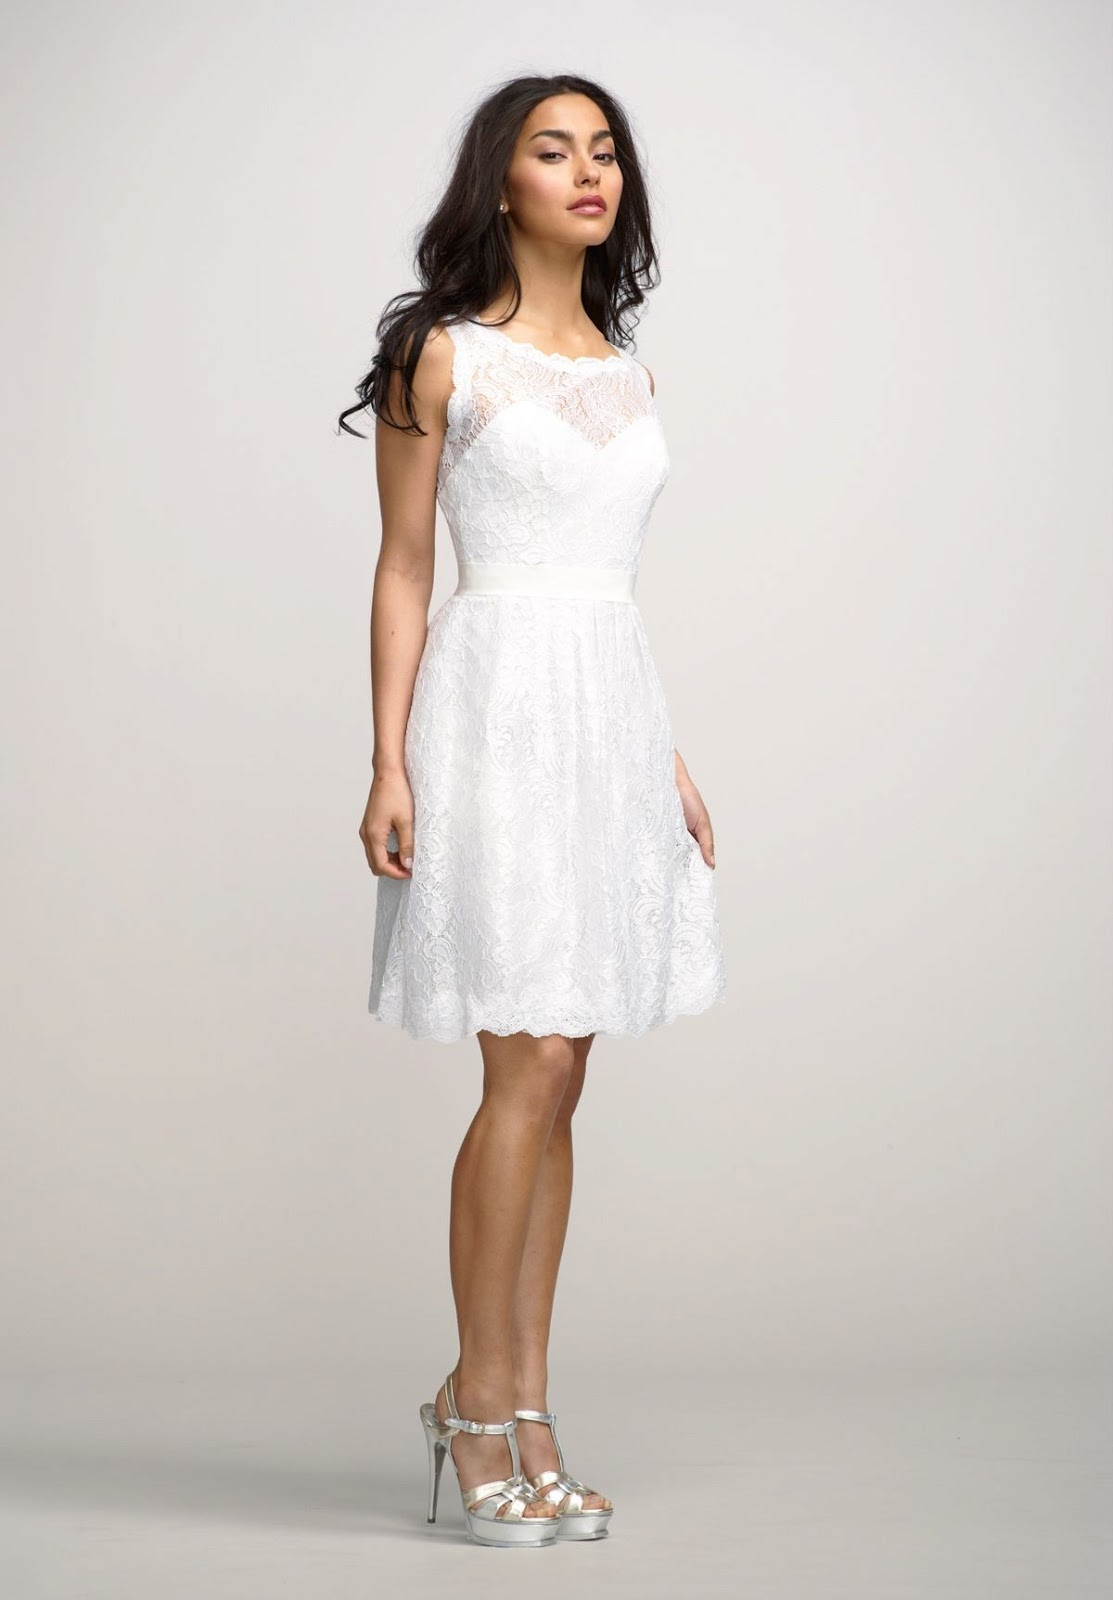 Bride Dresses For Reception